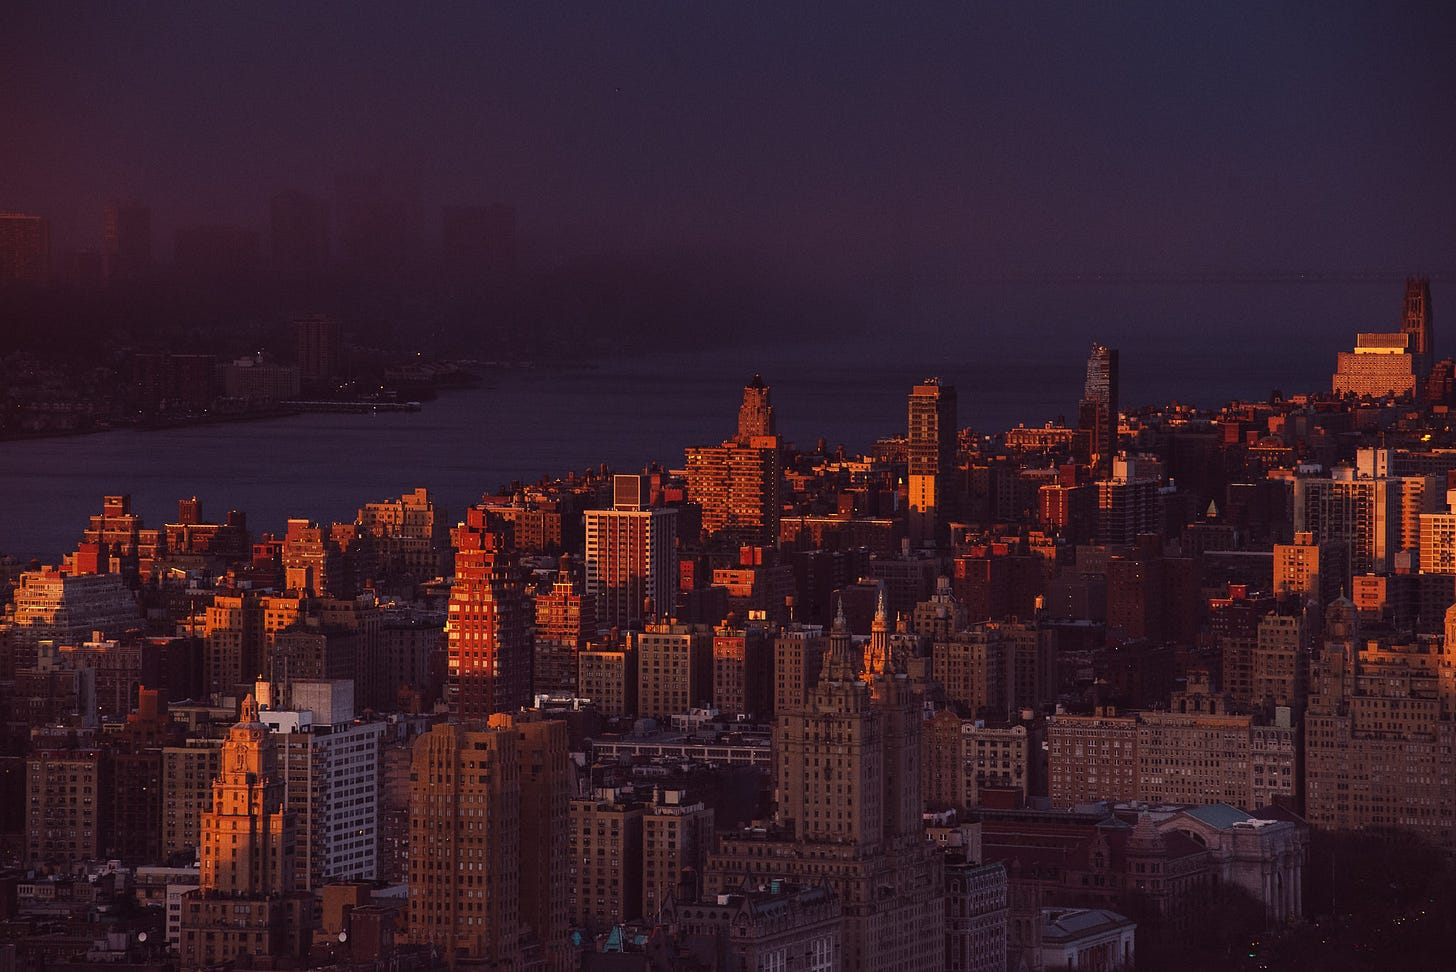 A view over the upper west side of Manhattan at sunset.